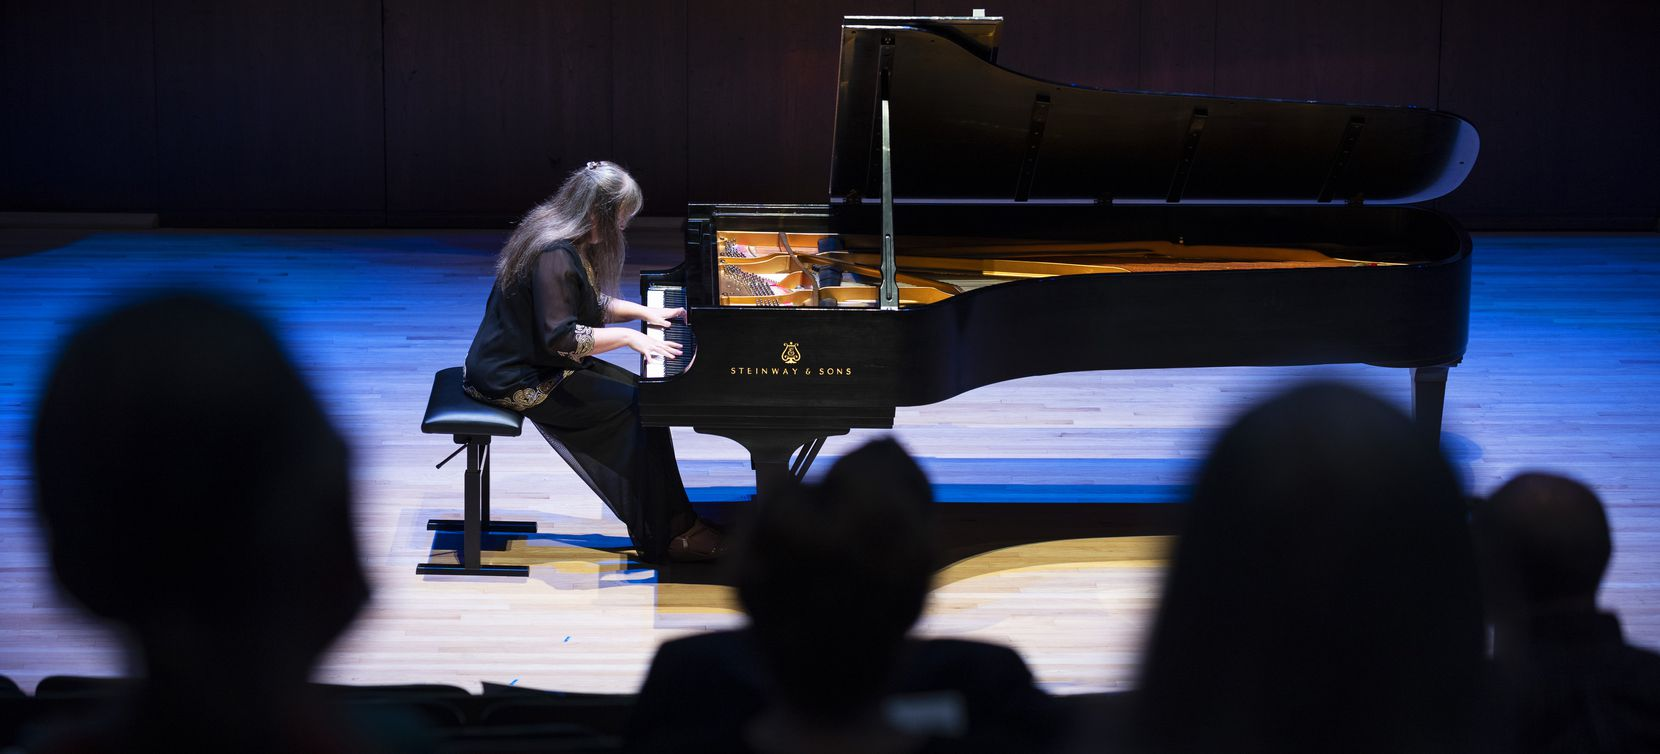 Pianist Liudmila Georgievskaya performs Shostakovich's Prelude and Fugue in D minor (1951) as part of the Voices of Change season opening concert on Sept. 19 at SMU's Caruth Auditorium in Dallas.